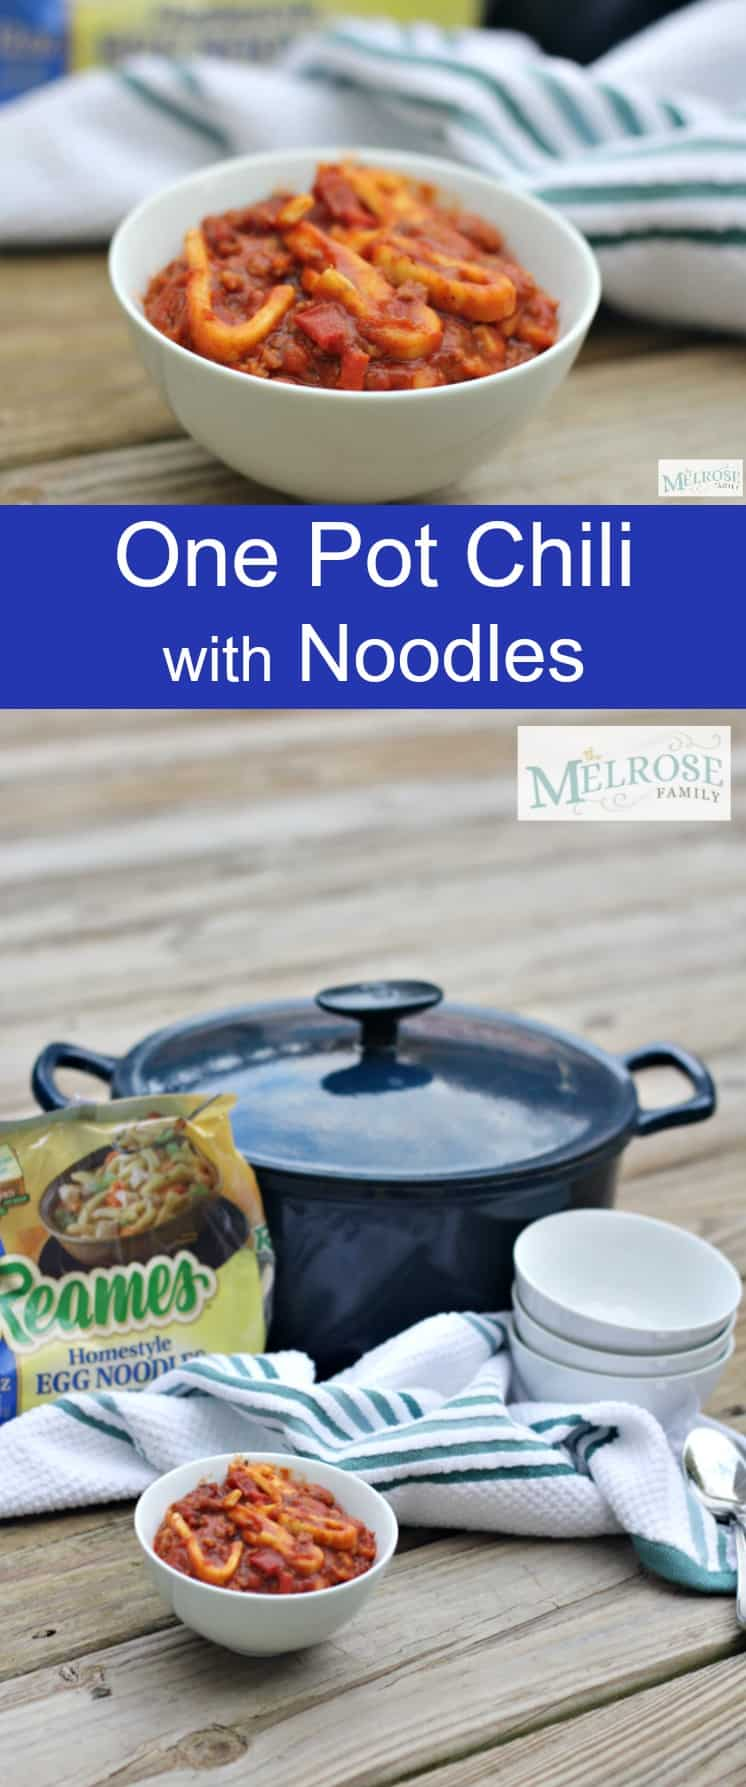 One Pot Chili with Noodles